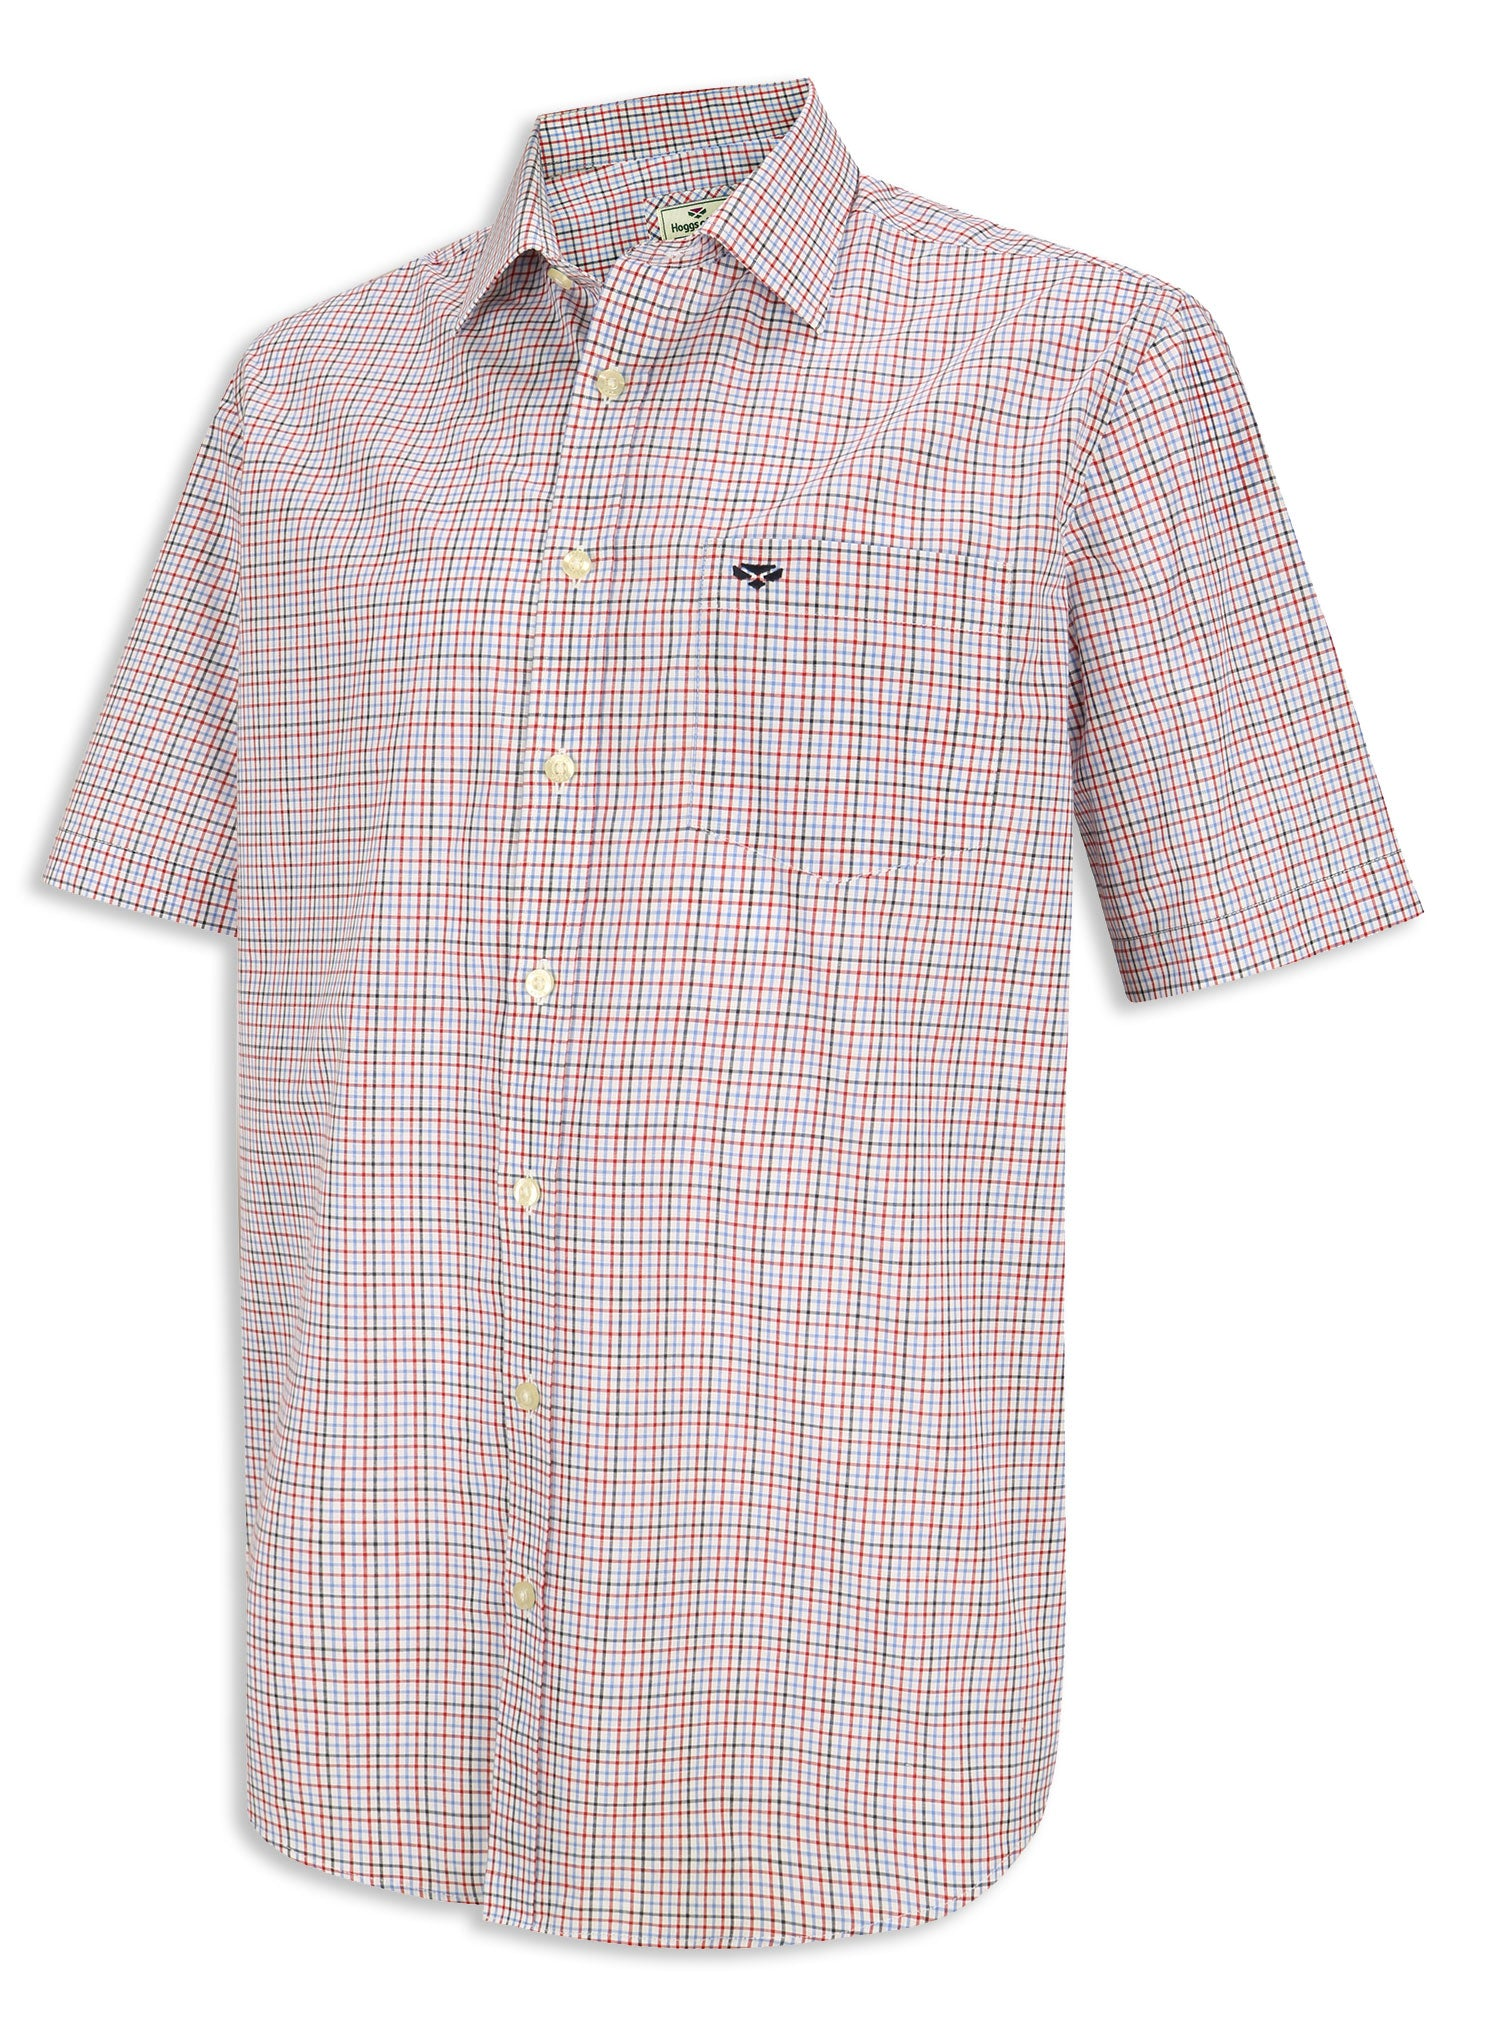 Blue Red Hoggs of Fife Muirfield Short Sleeve Shirt